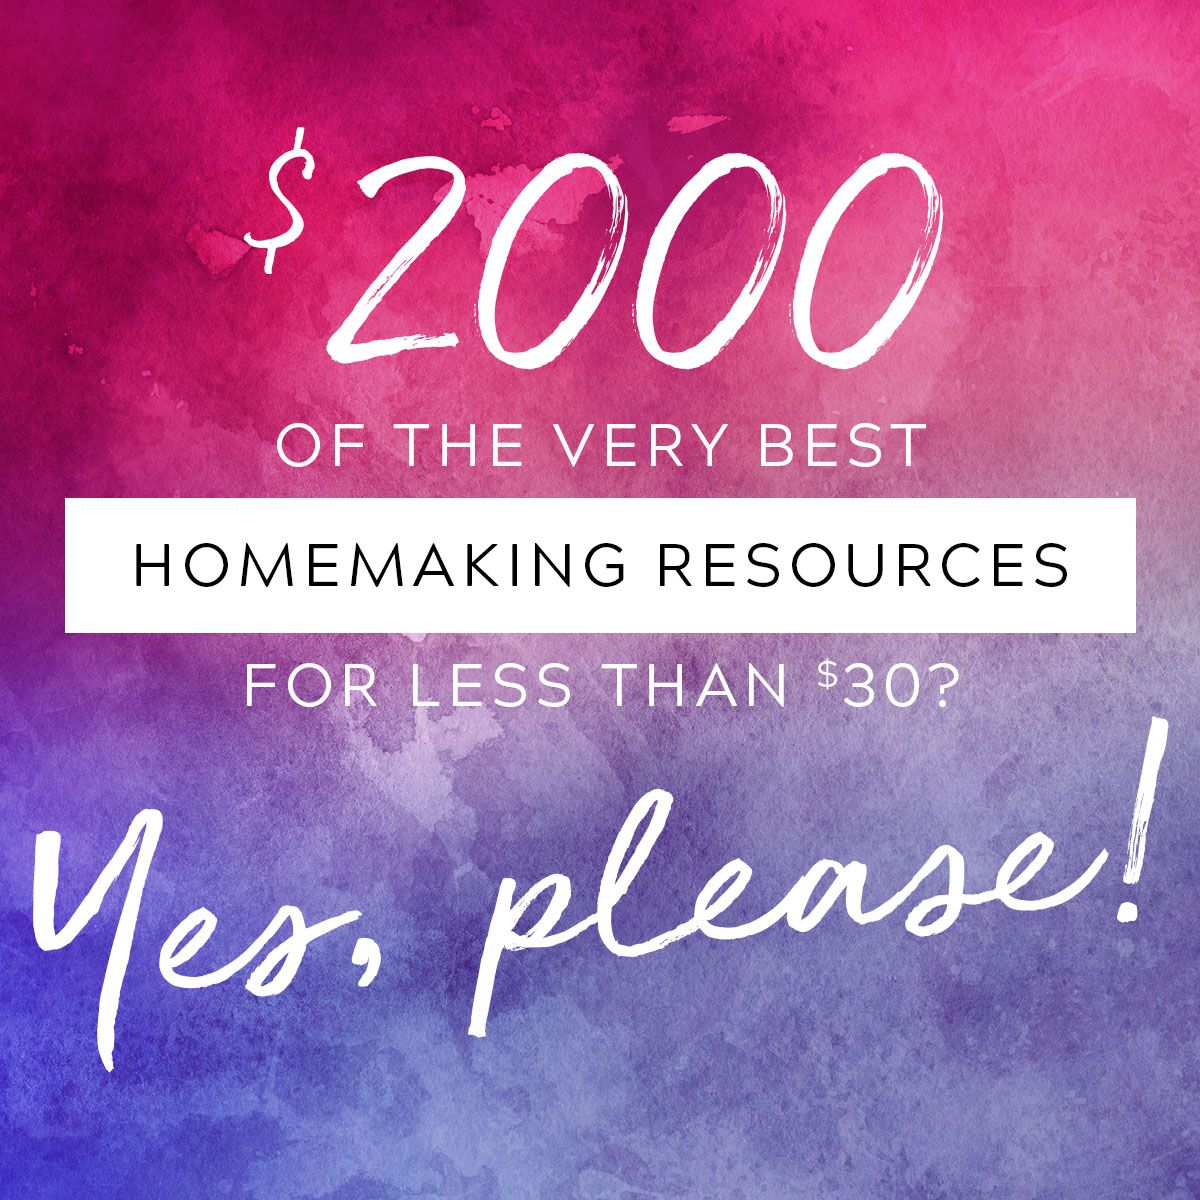 Ultimate Homemaking Bundle Flash Sale Tools October 23 25th ONLY